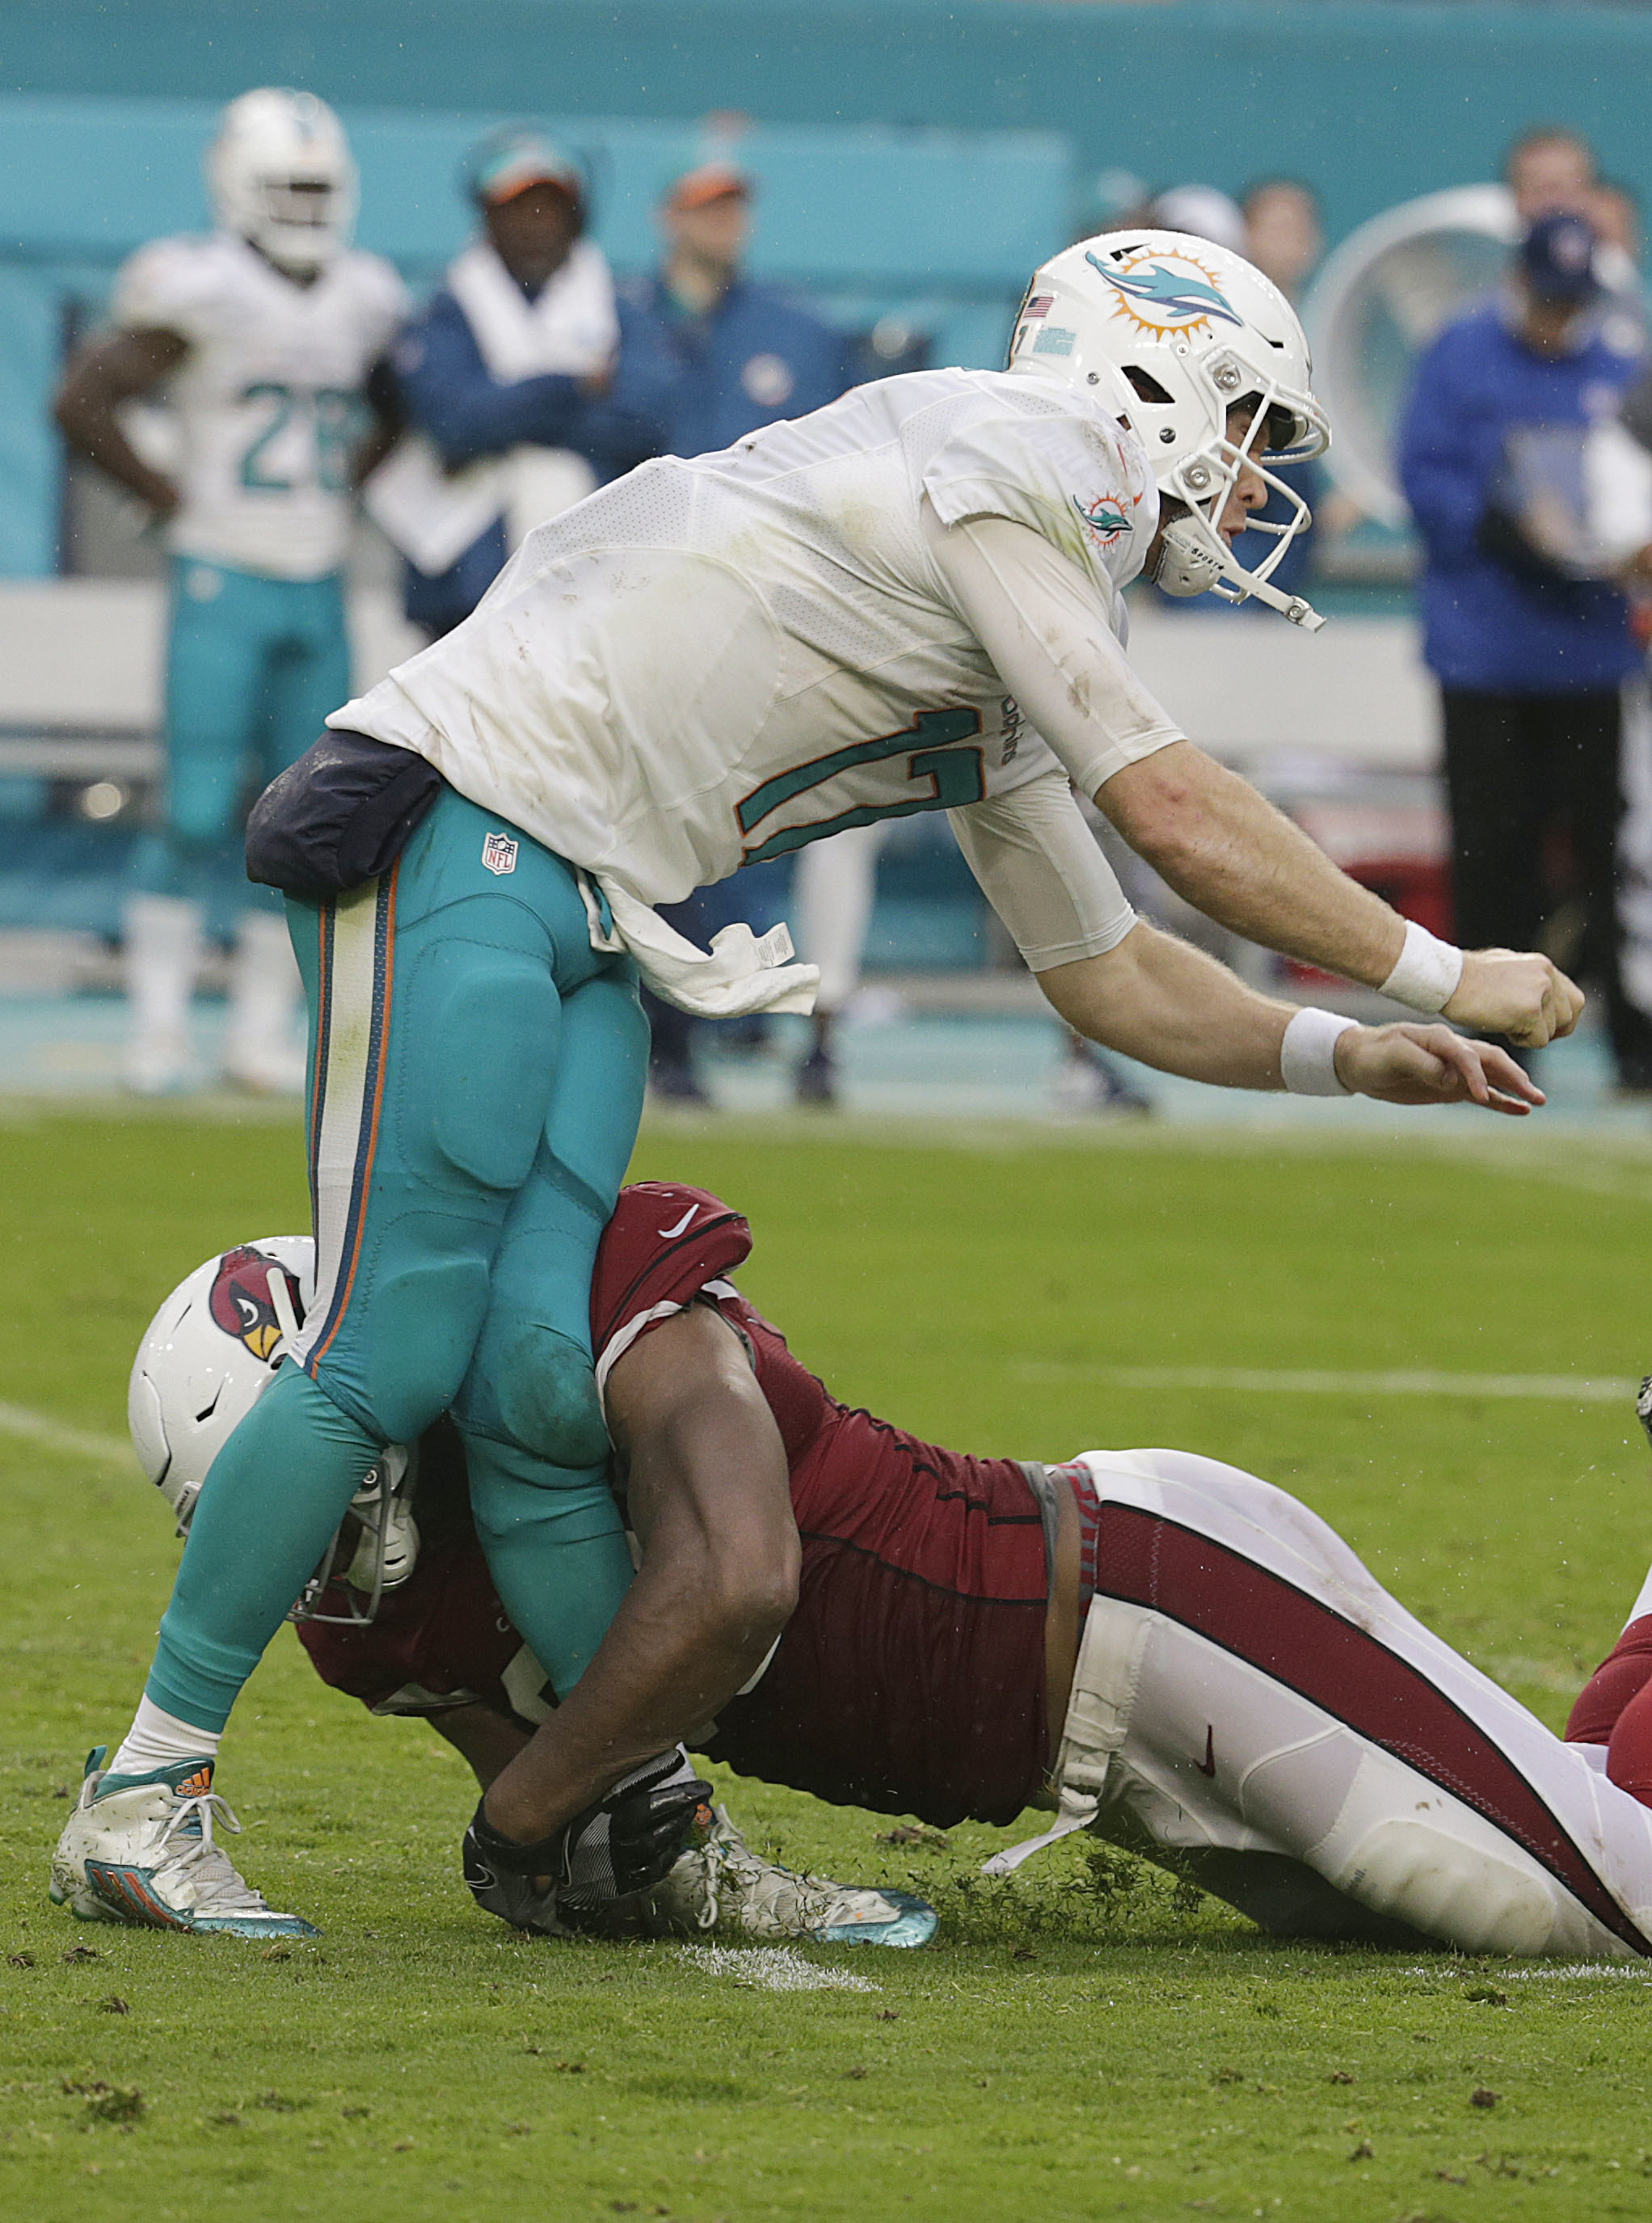 Arizona Cardinals defensive end Calais Campbell (93) tackles Miami Dolphins quarterback Ryan Tannehill (17), during the second half of an NFL football game, Sunday, Dec. 11, 2016, in Miami Gardens, Fla. Tannehill was injured on the play. (AP Photo/Lynne S